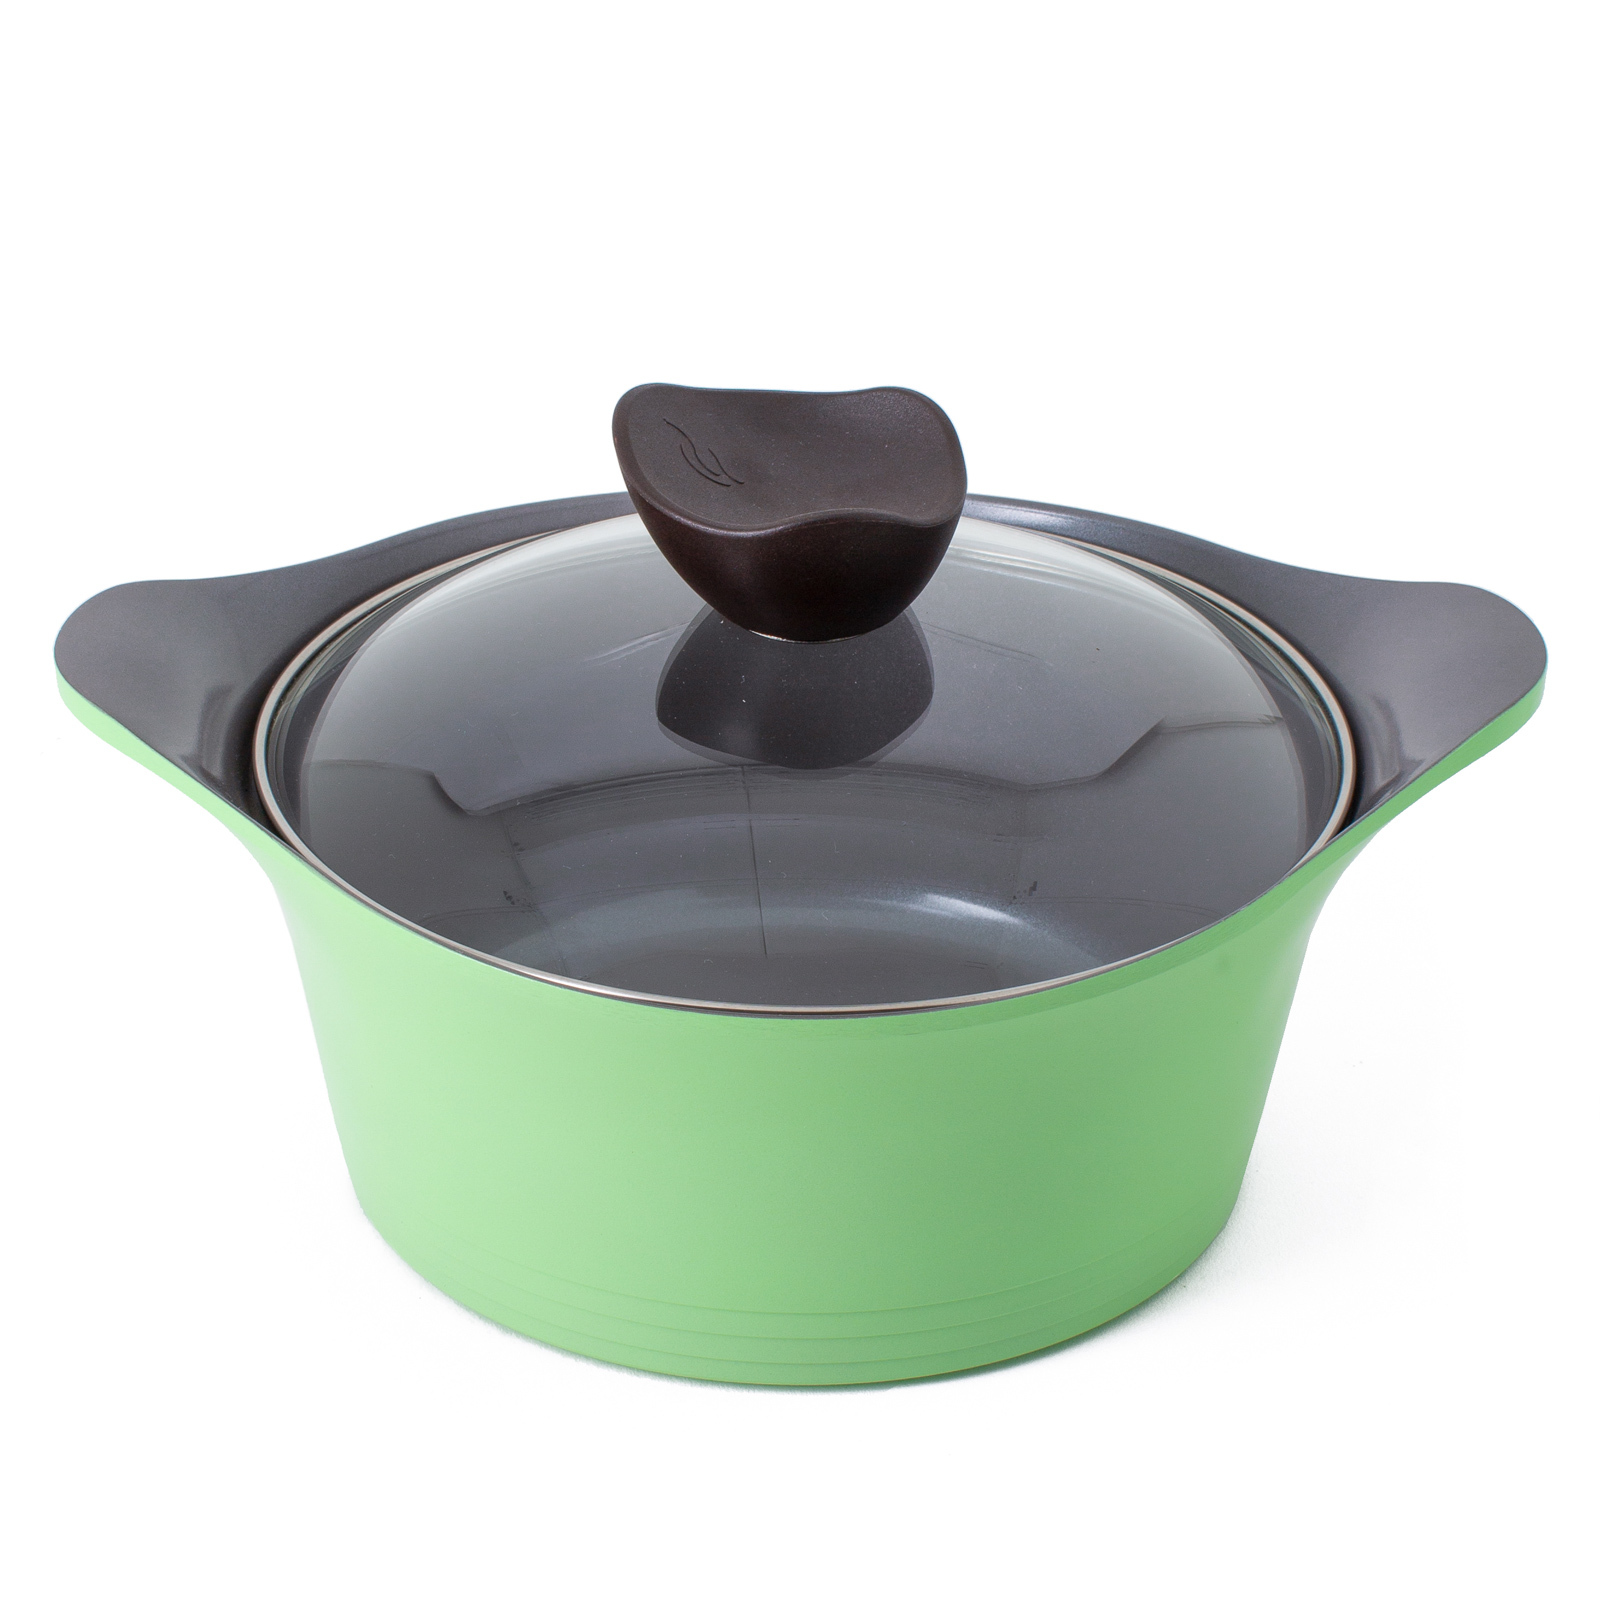 Neoflam Nature+ 20cm Casserole 2.3L Apple Green Induction with Glass Lid